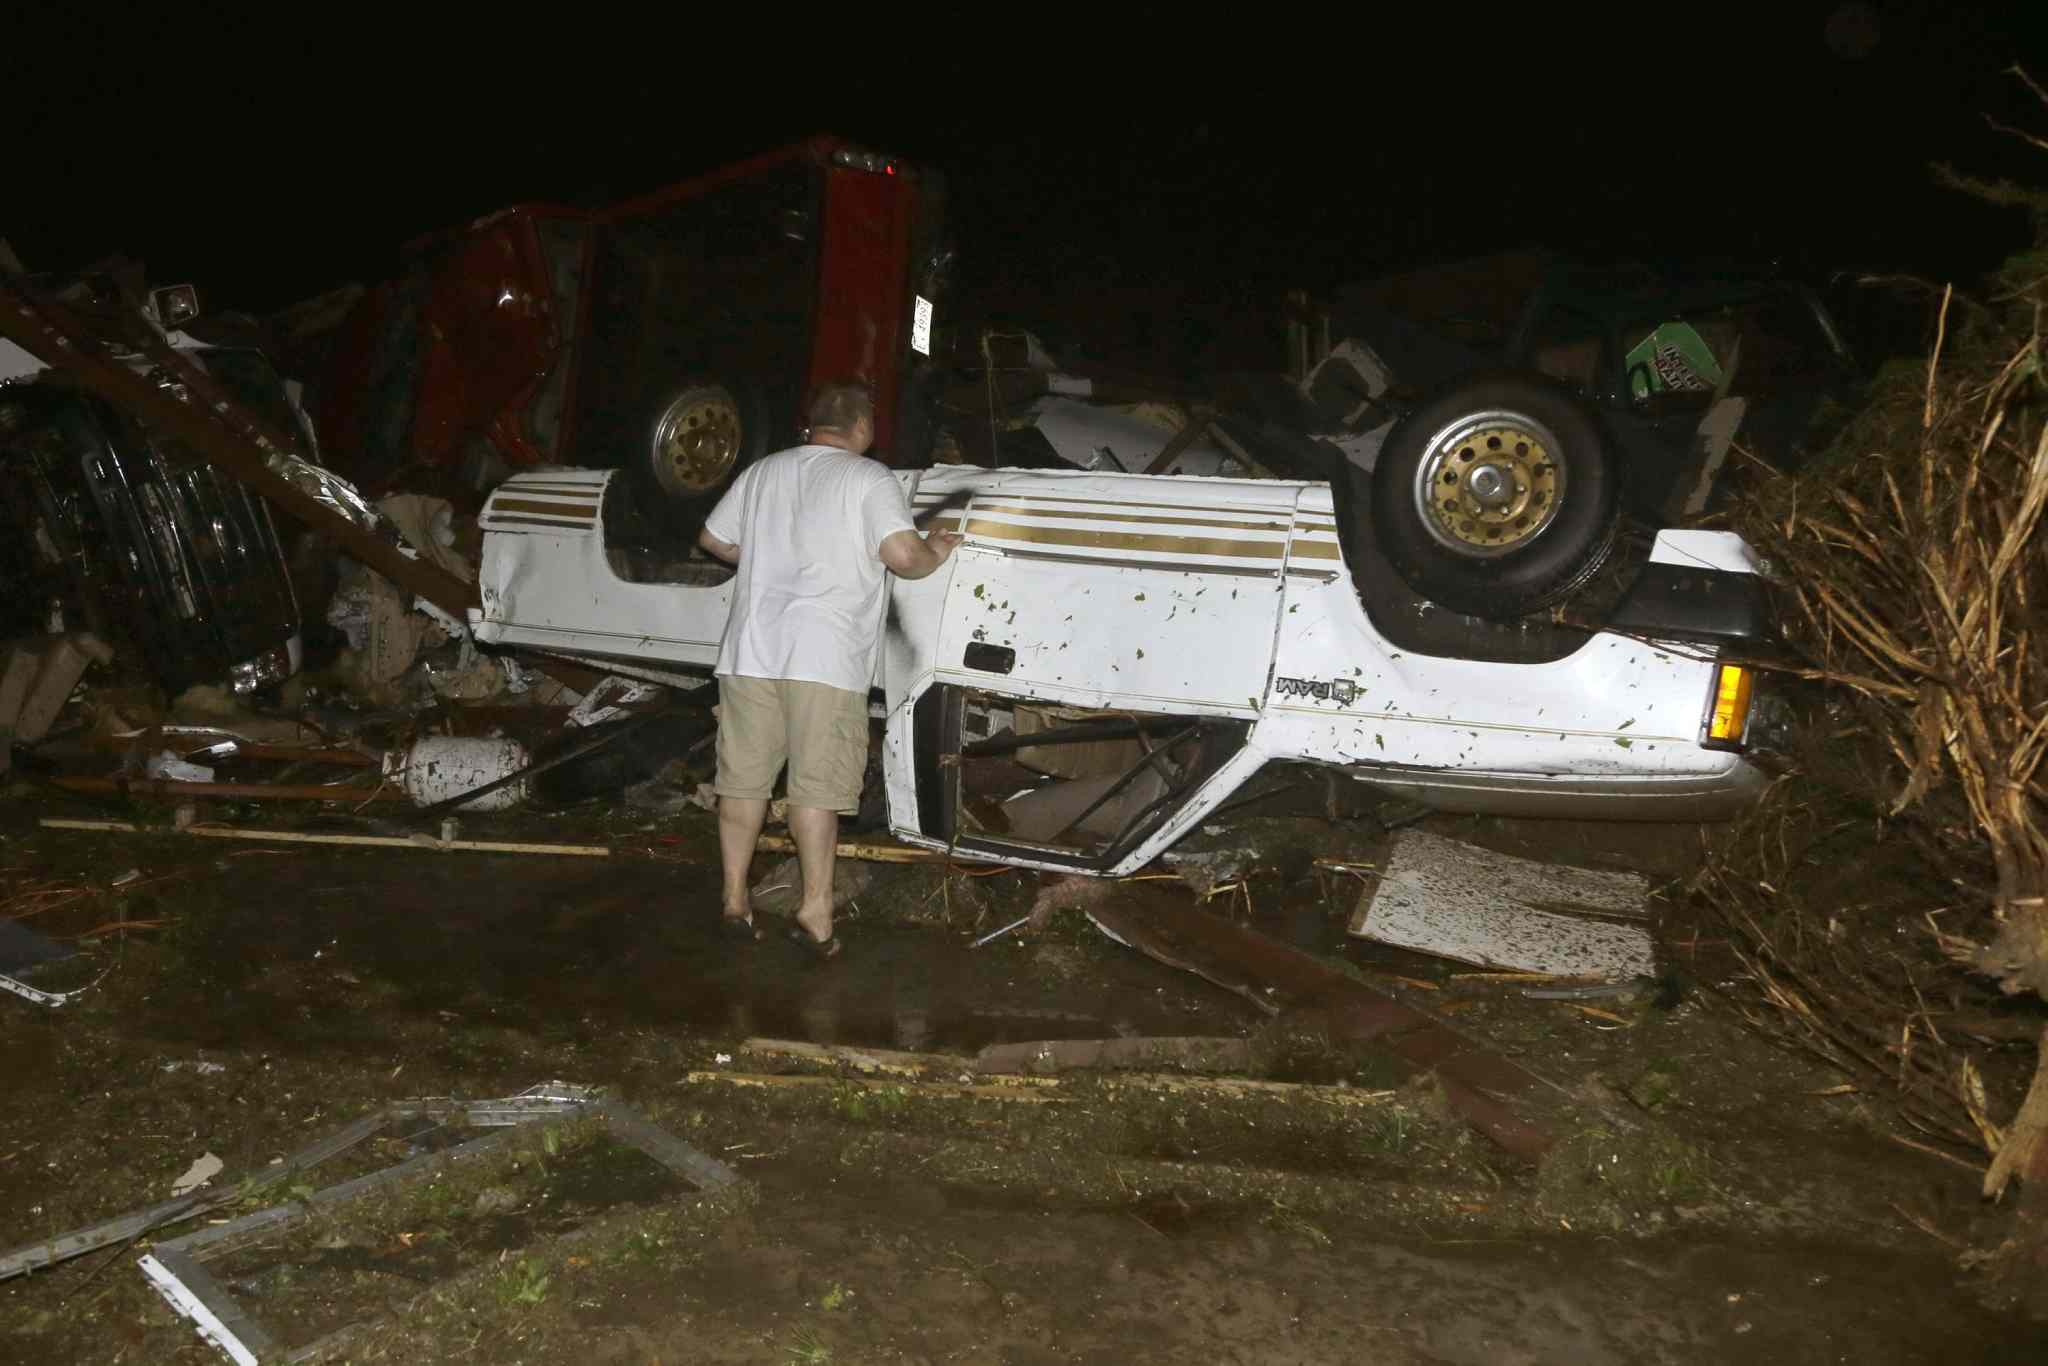 John Ward, an automobile and RV dealer, looks at damage to one of his trucks in Mayflower, Ark., Sunday, after a tornado struck.